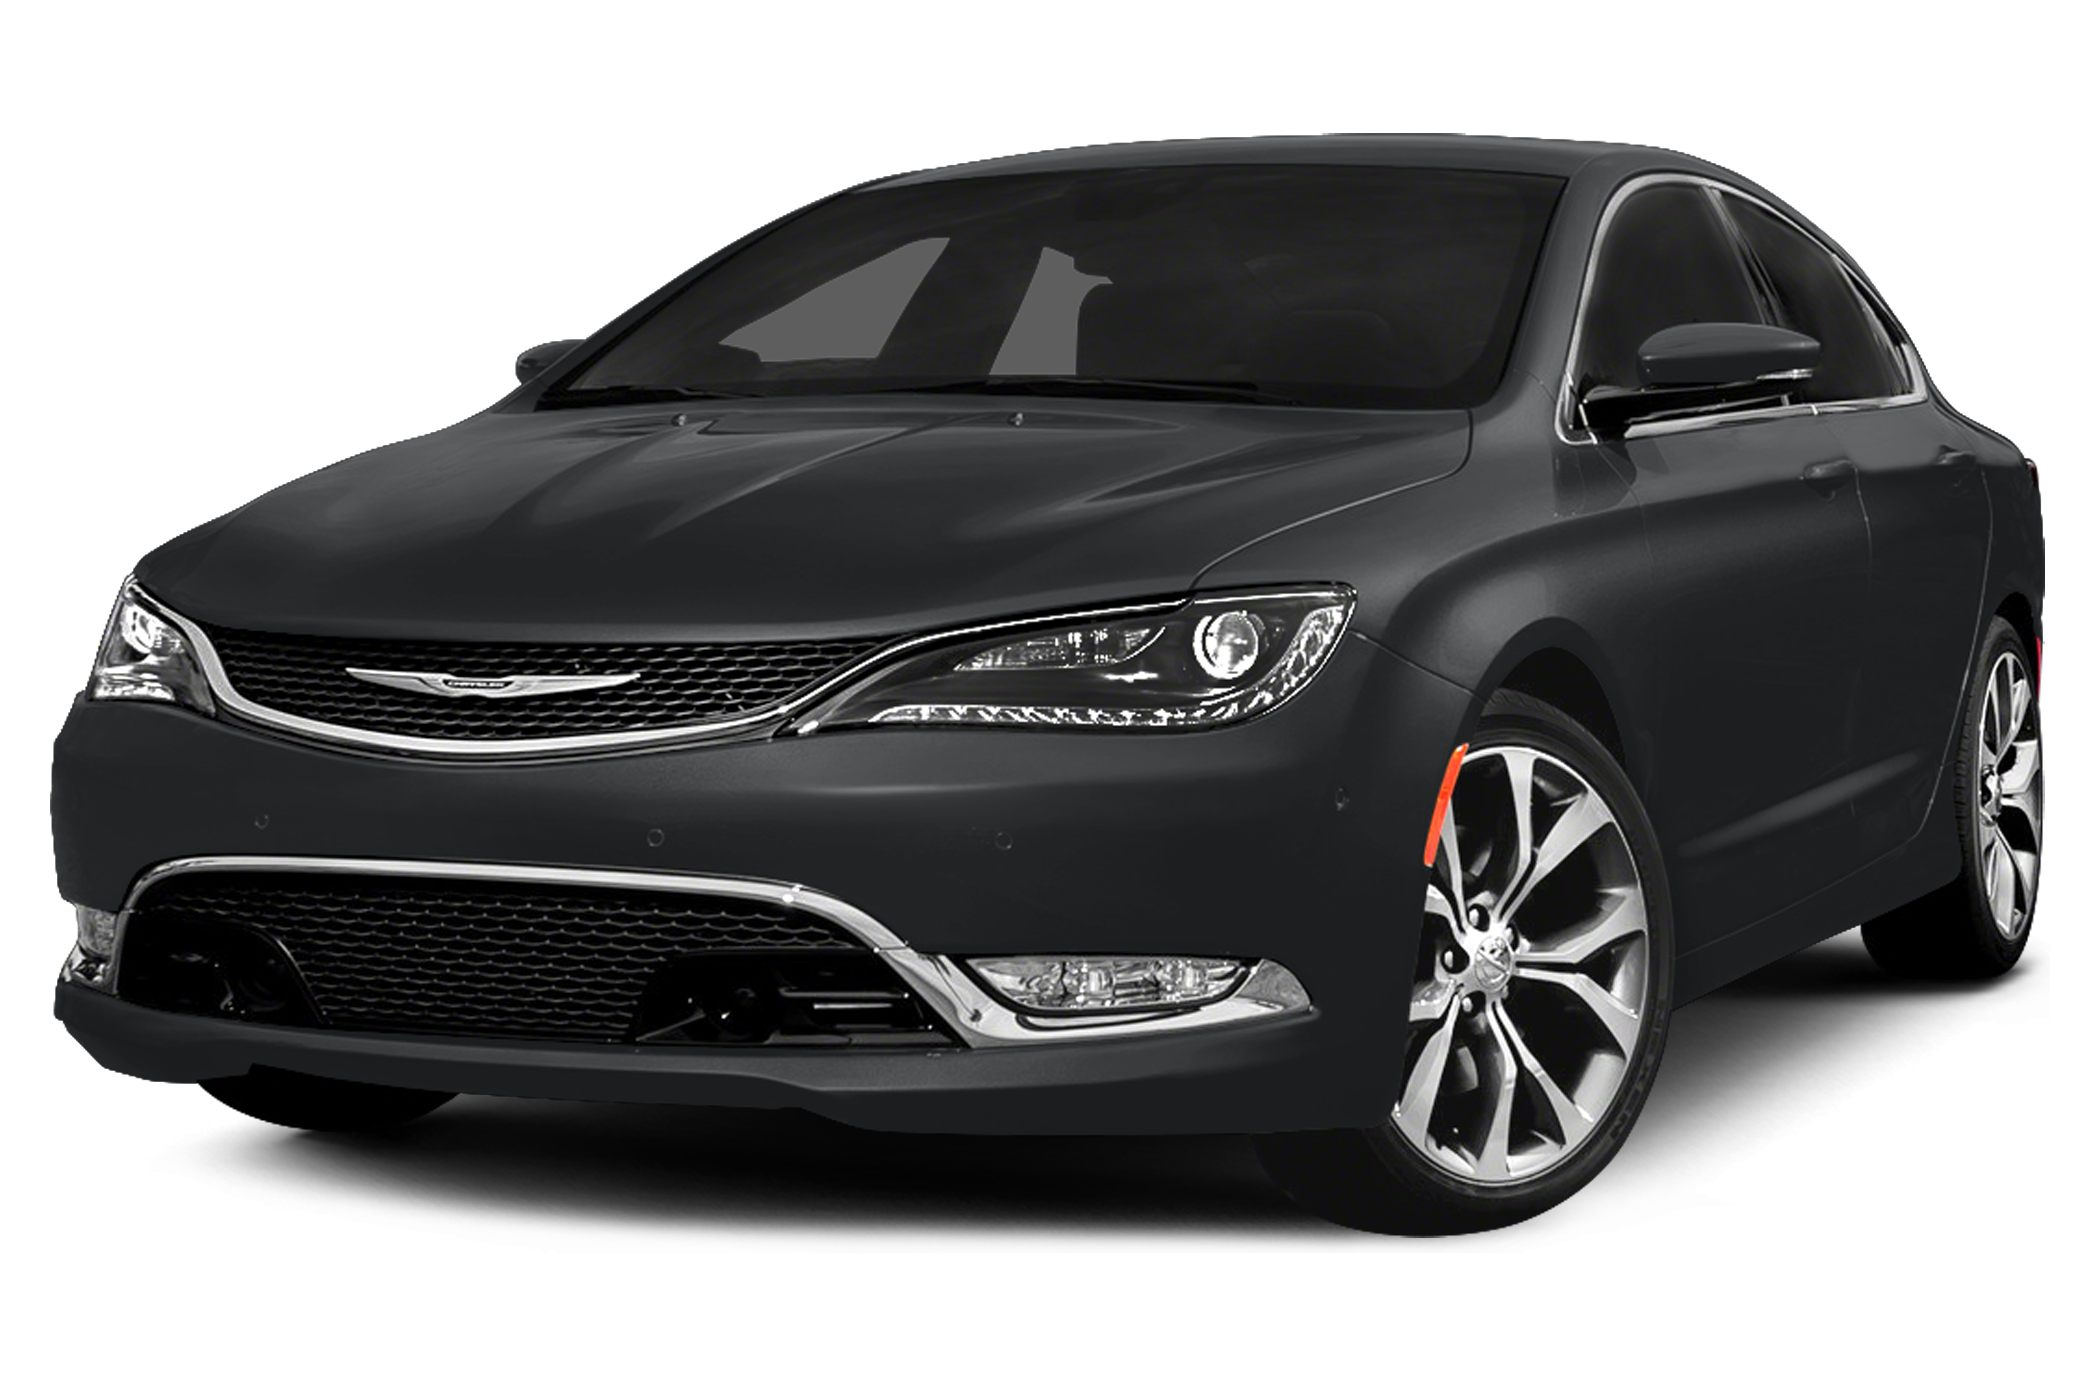 2015 Chrysler 200 Limited Sedan for sale in Owings Mills for $17,129 with 0 miles.